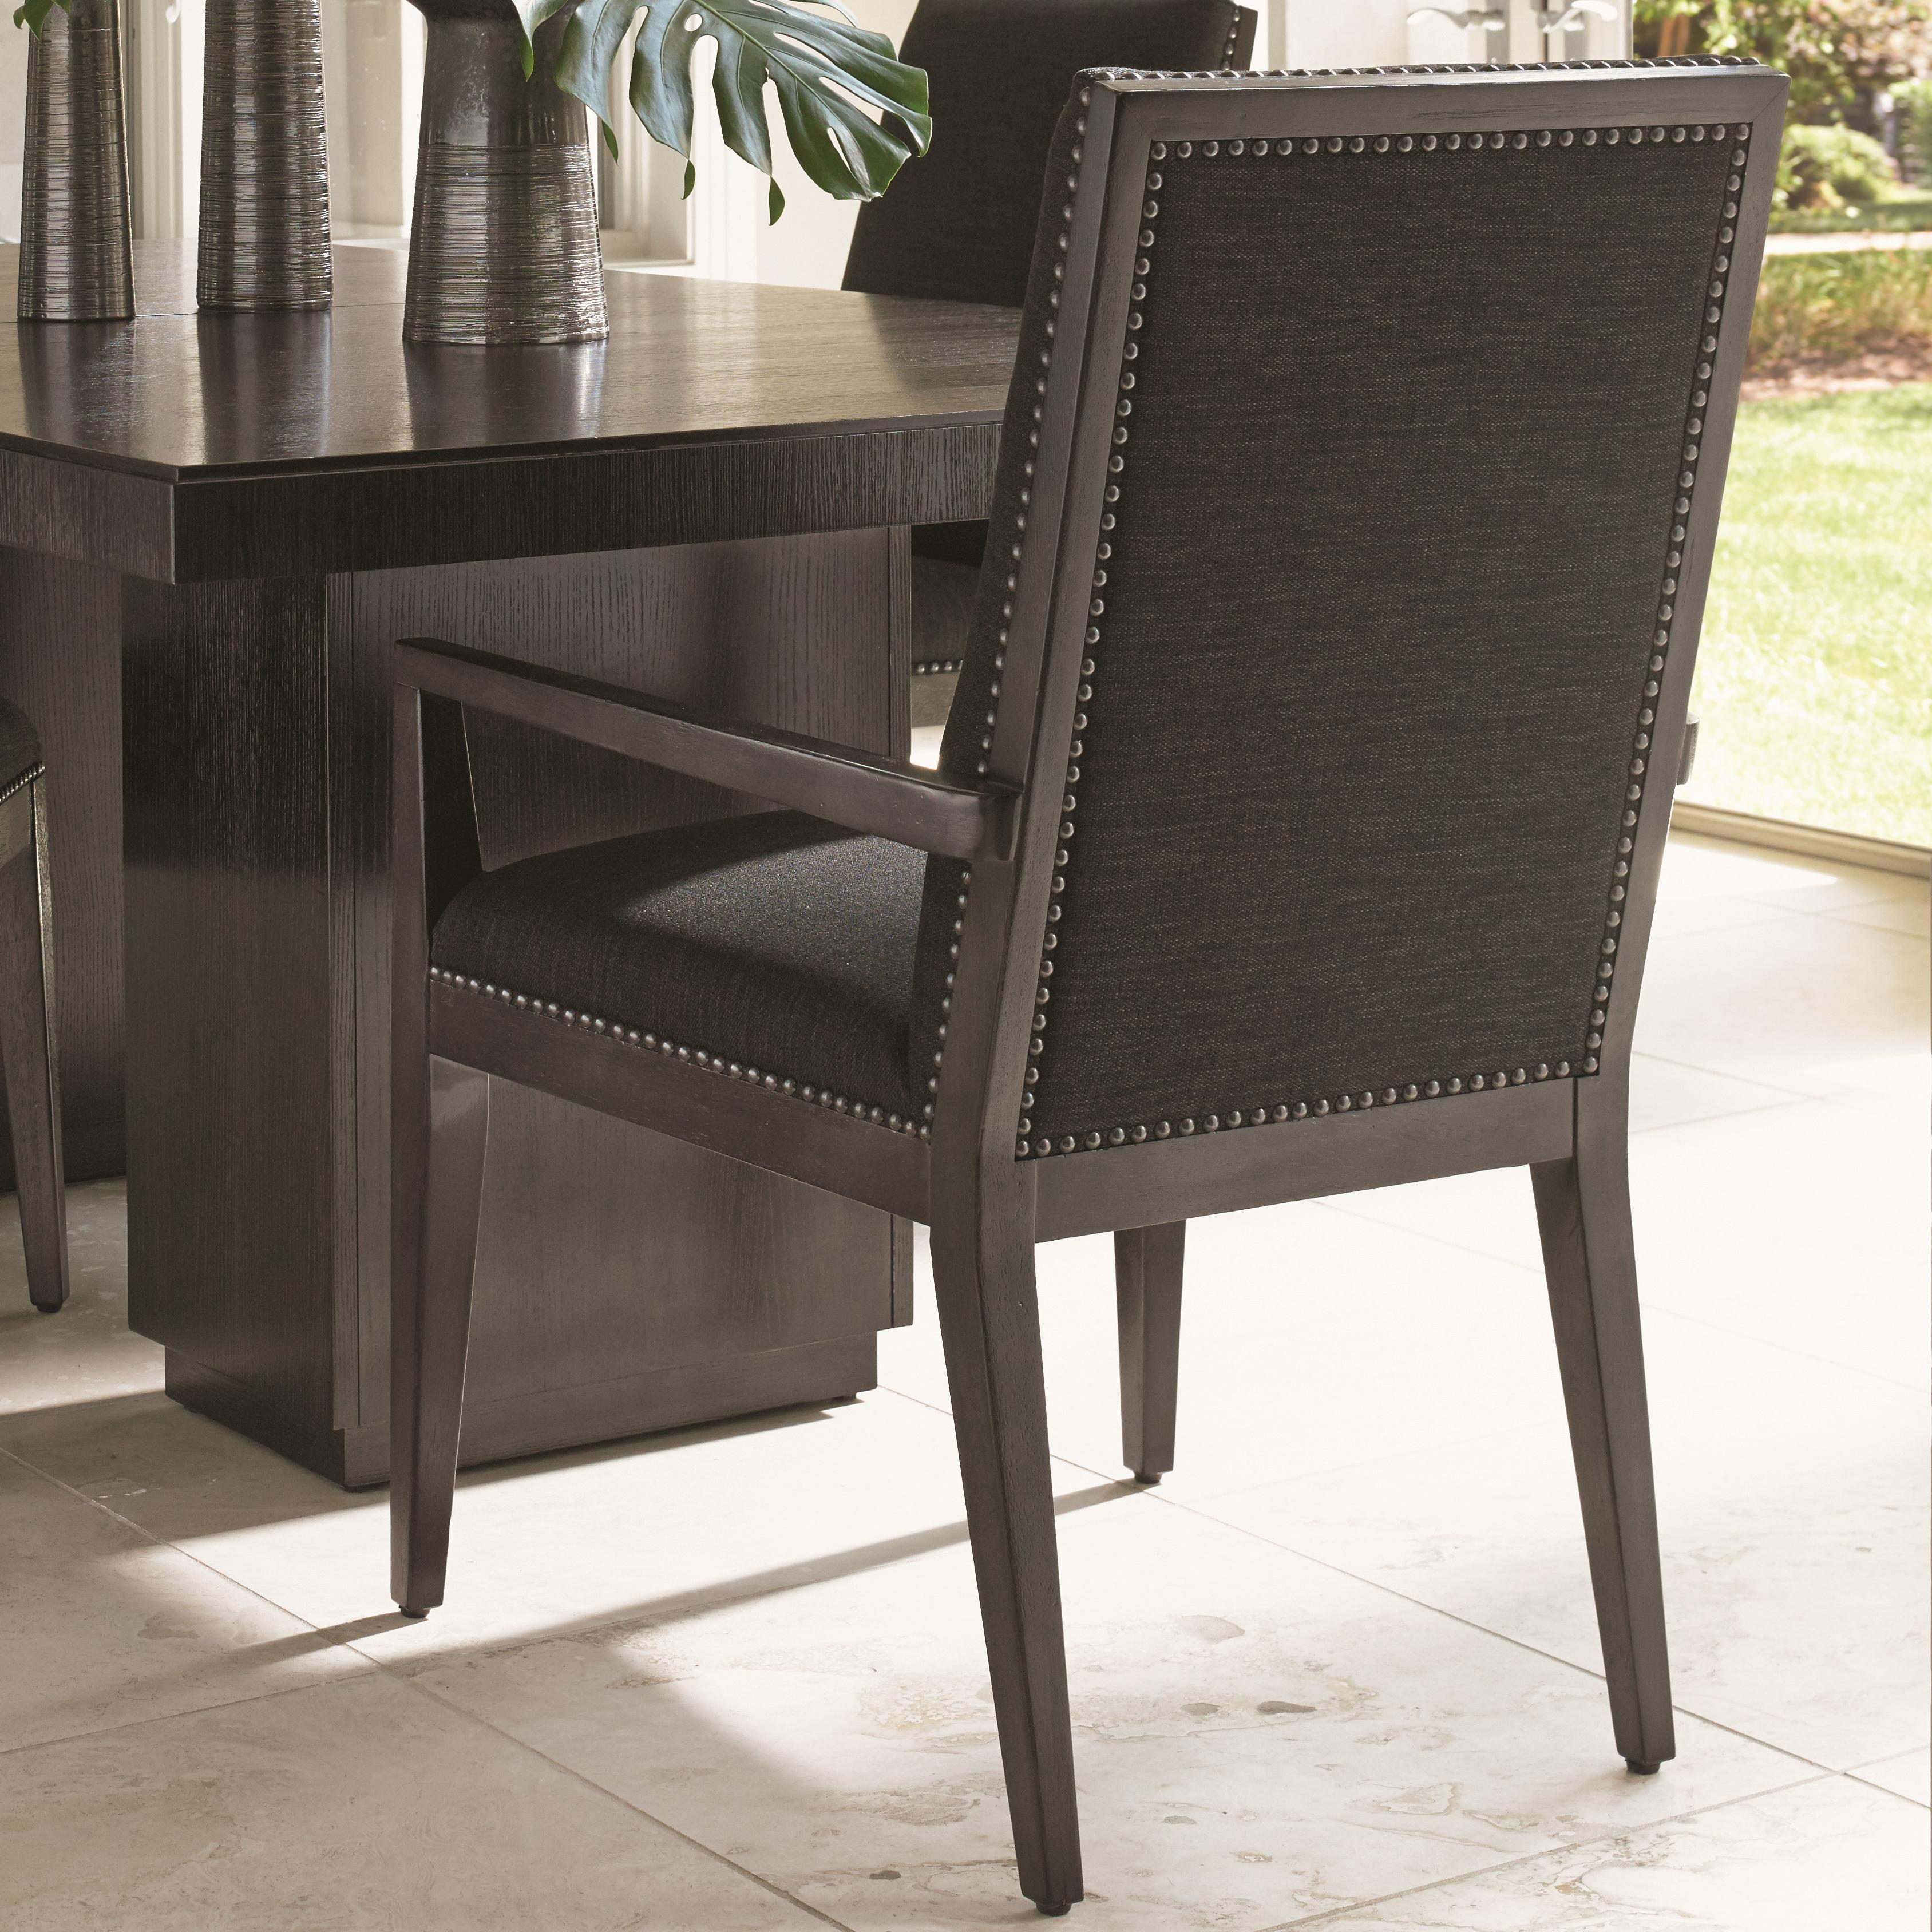 Carrera Vantage Upholstered Arm Chair by Lexington at Baer's Furniture